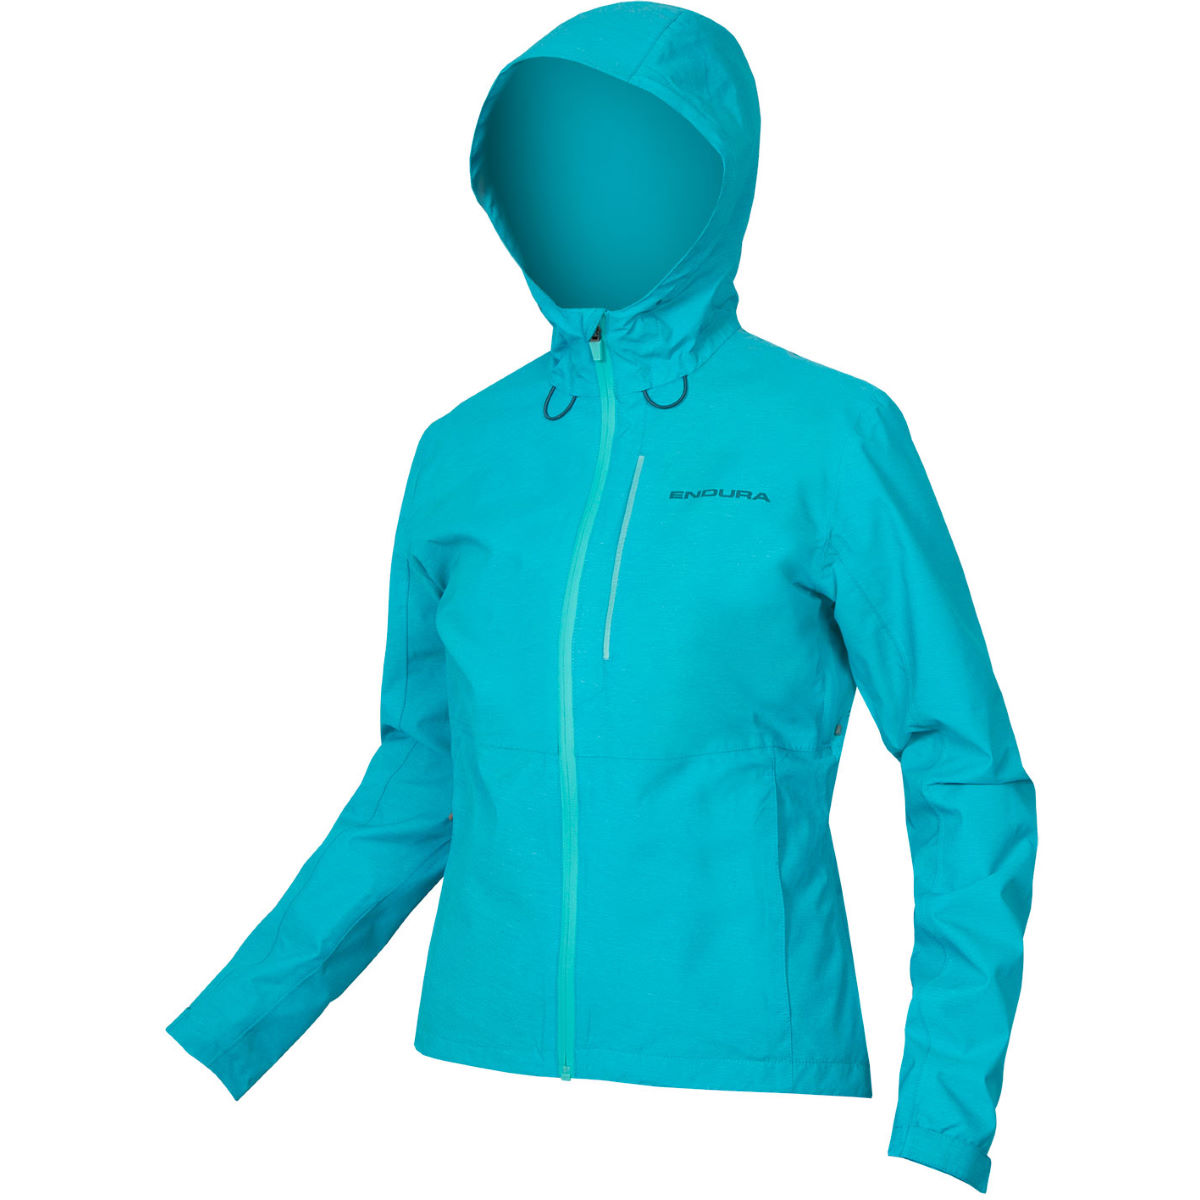 Endura Women's Hummvee Waterproof Hooded MTB Jacket - Chaquetas de Endura